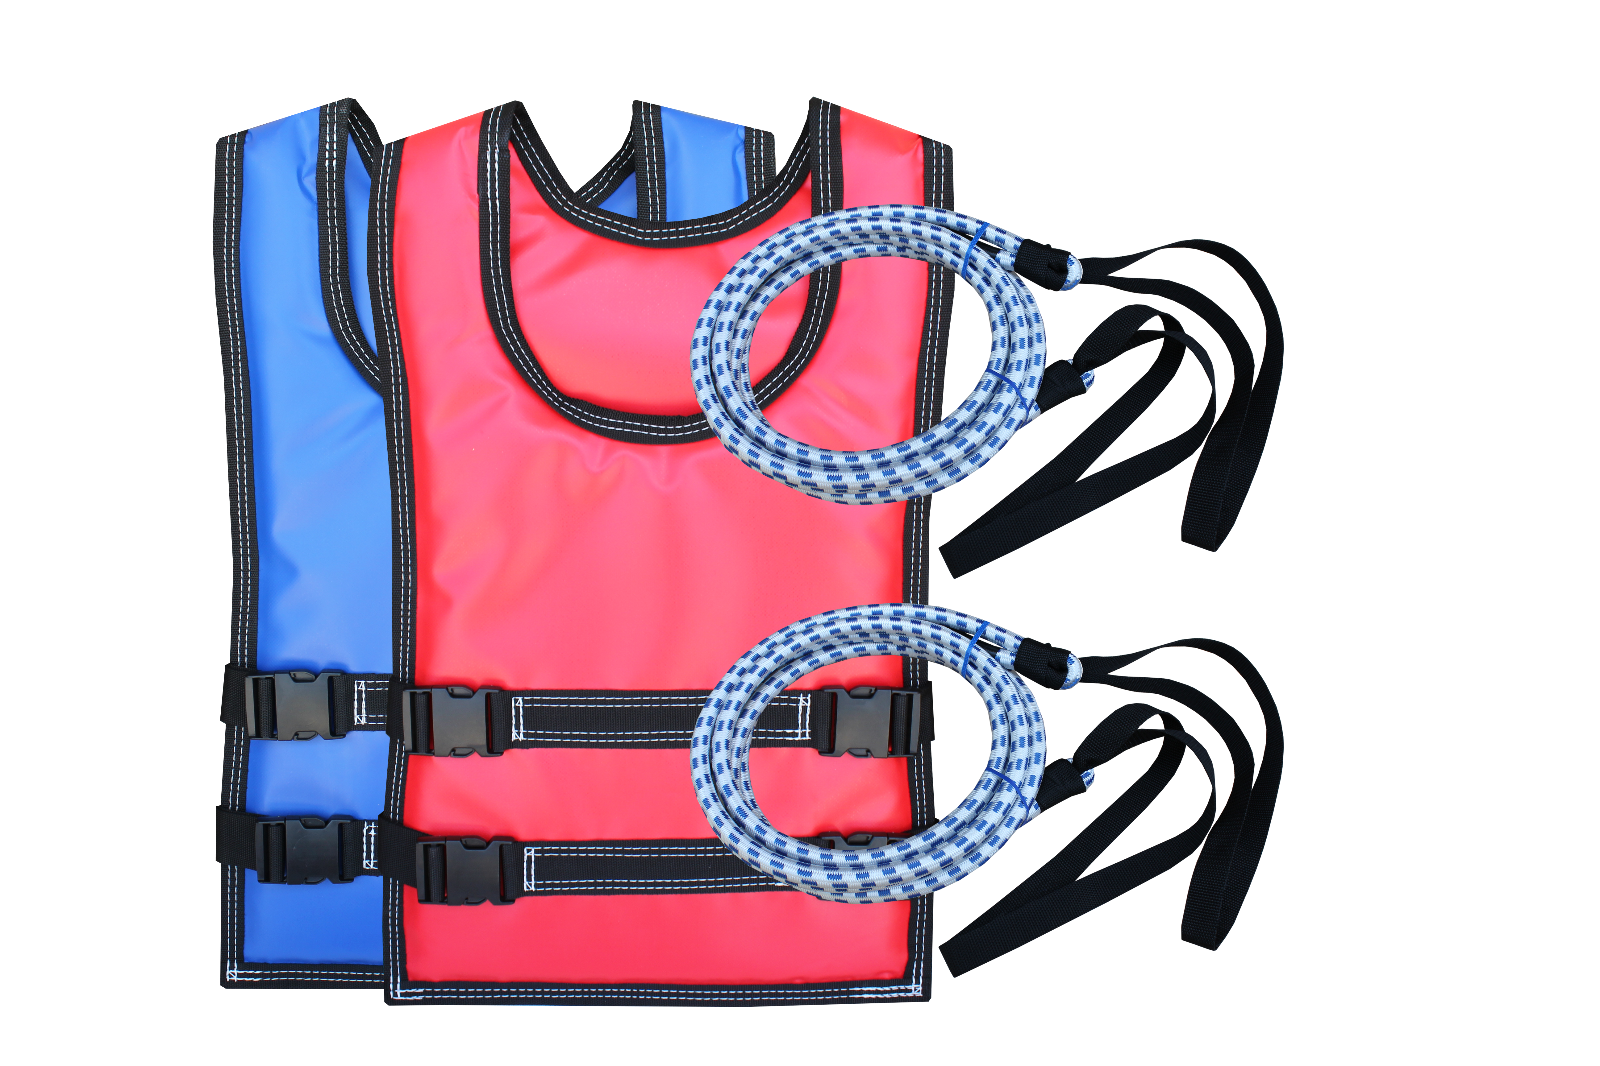 Bungee Harness SET - For Inflatable Bungee Run - Adult Vests